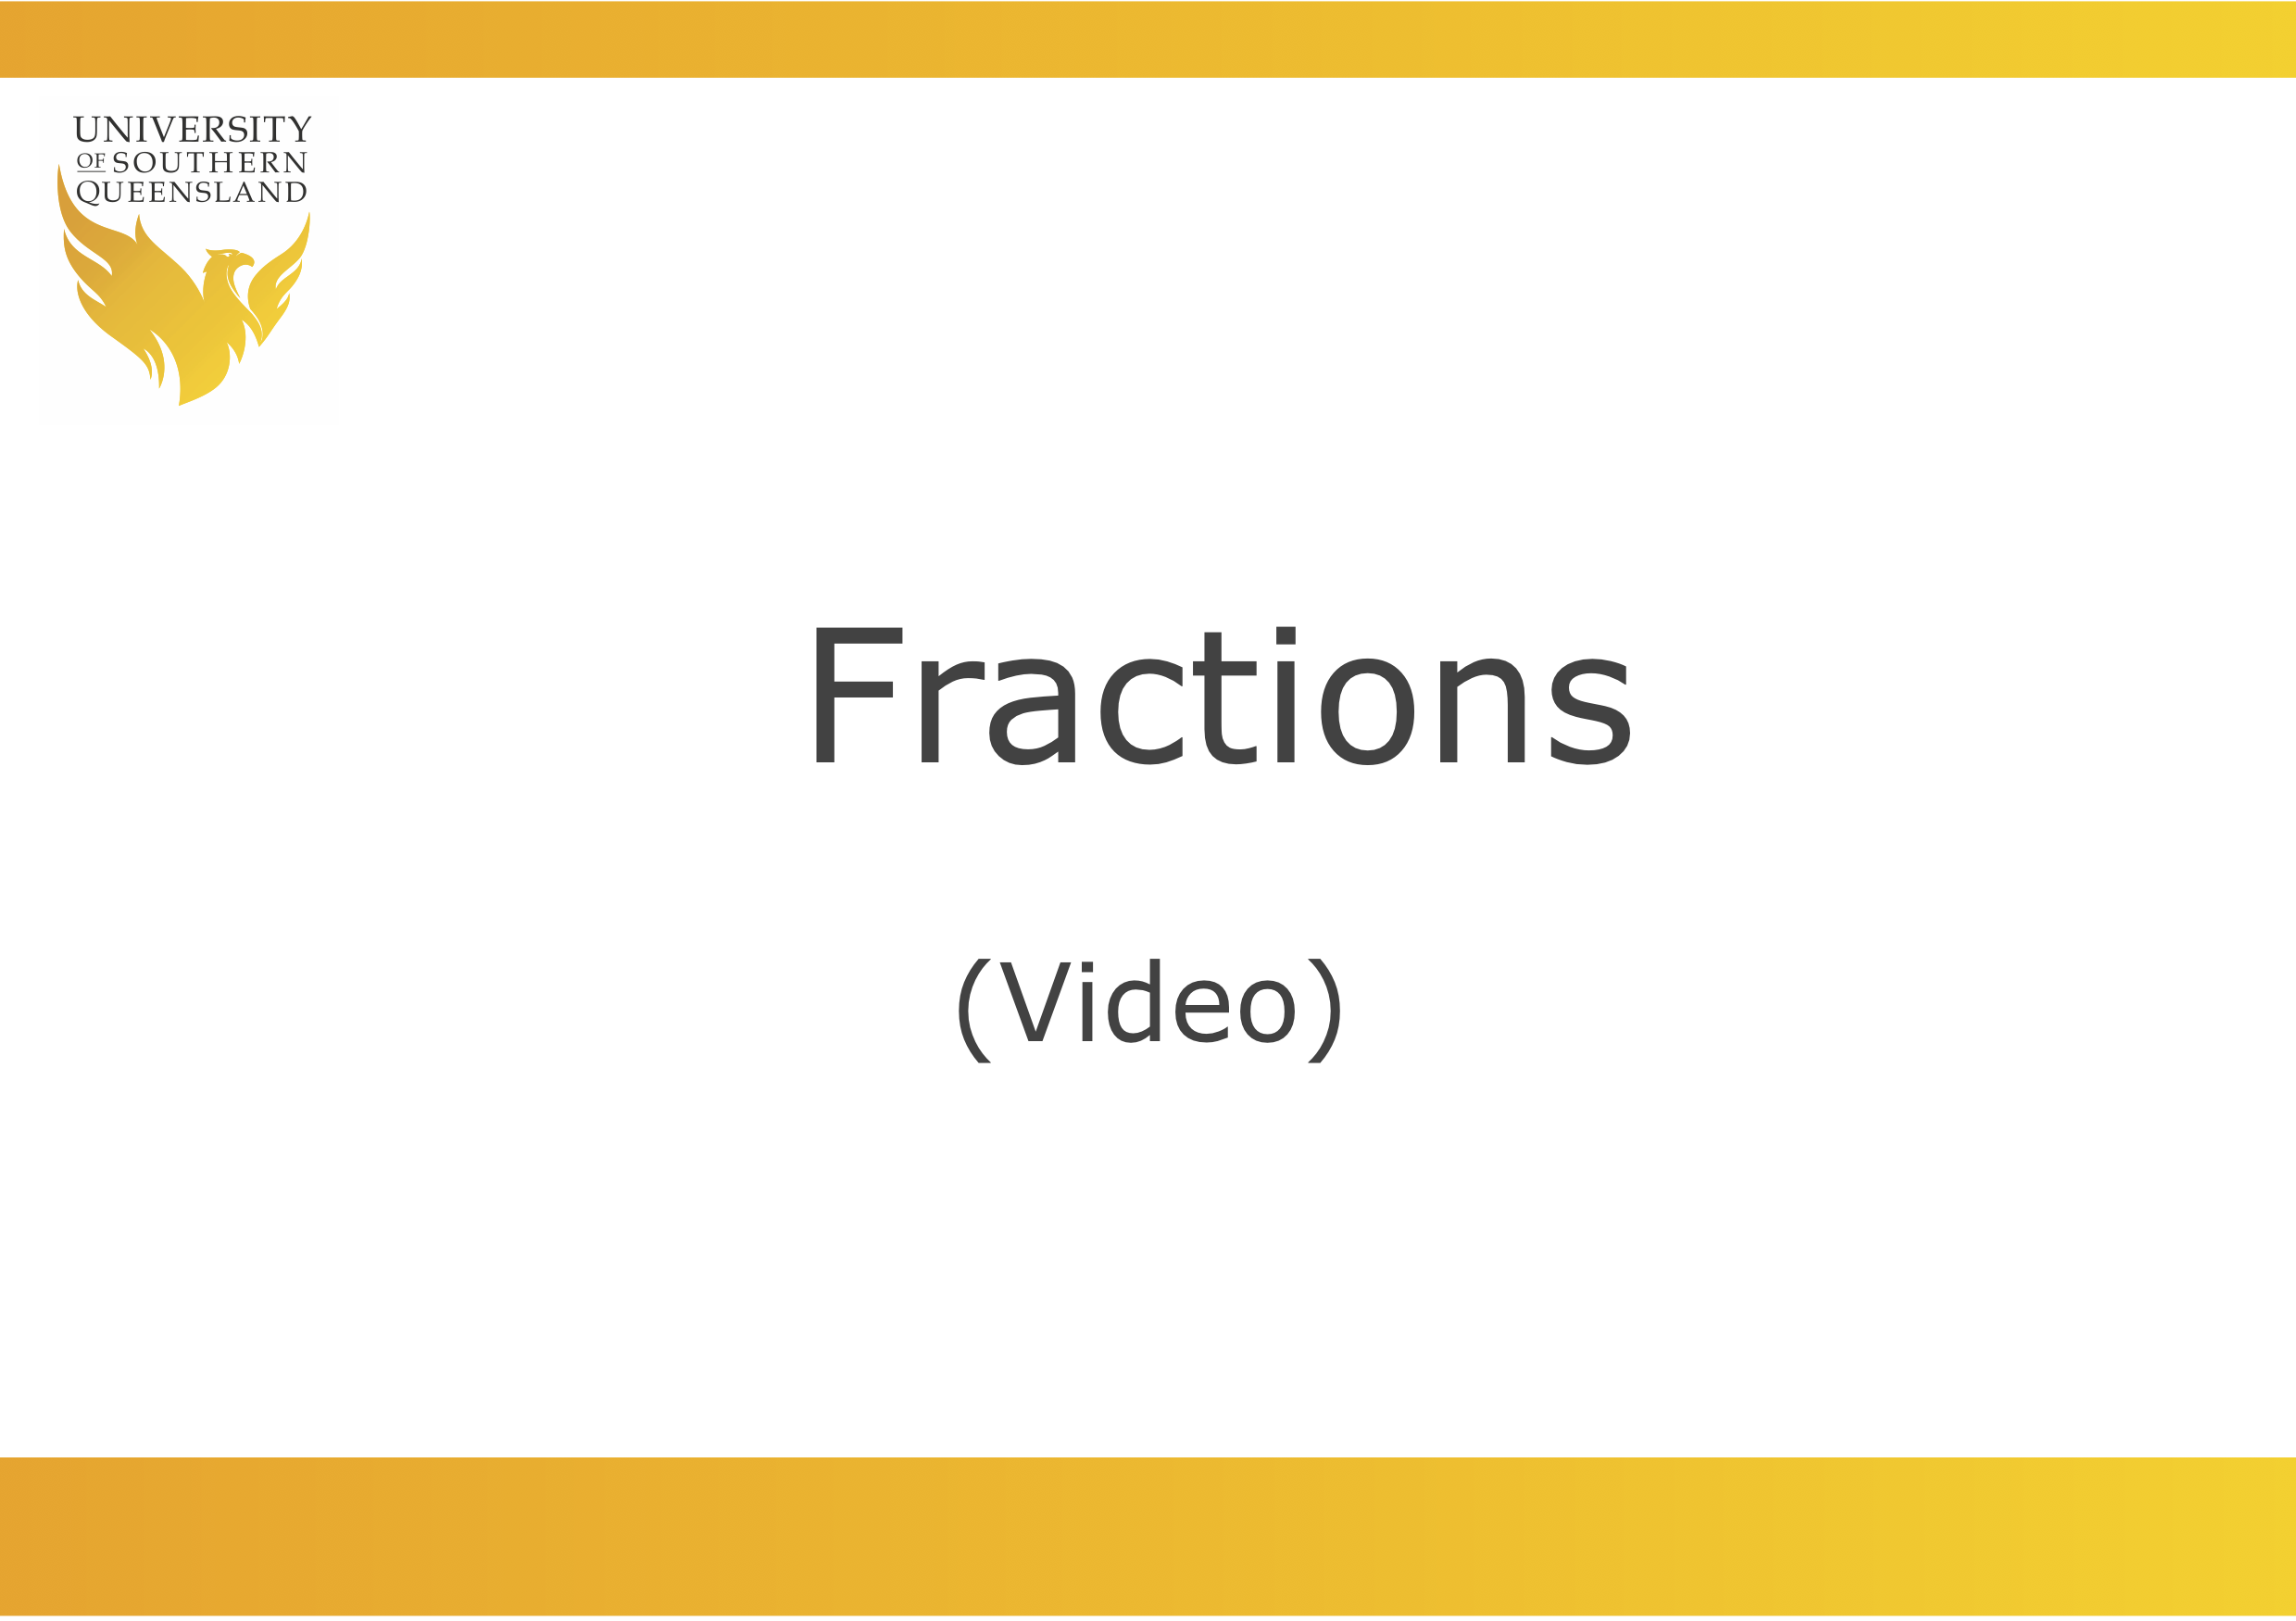 fractions_image